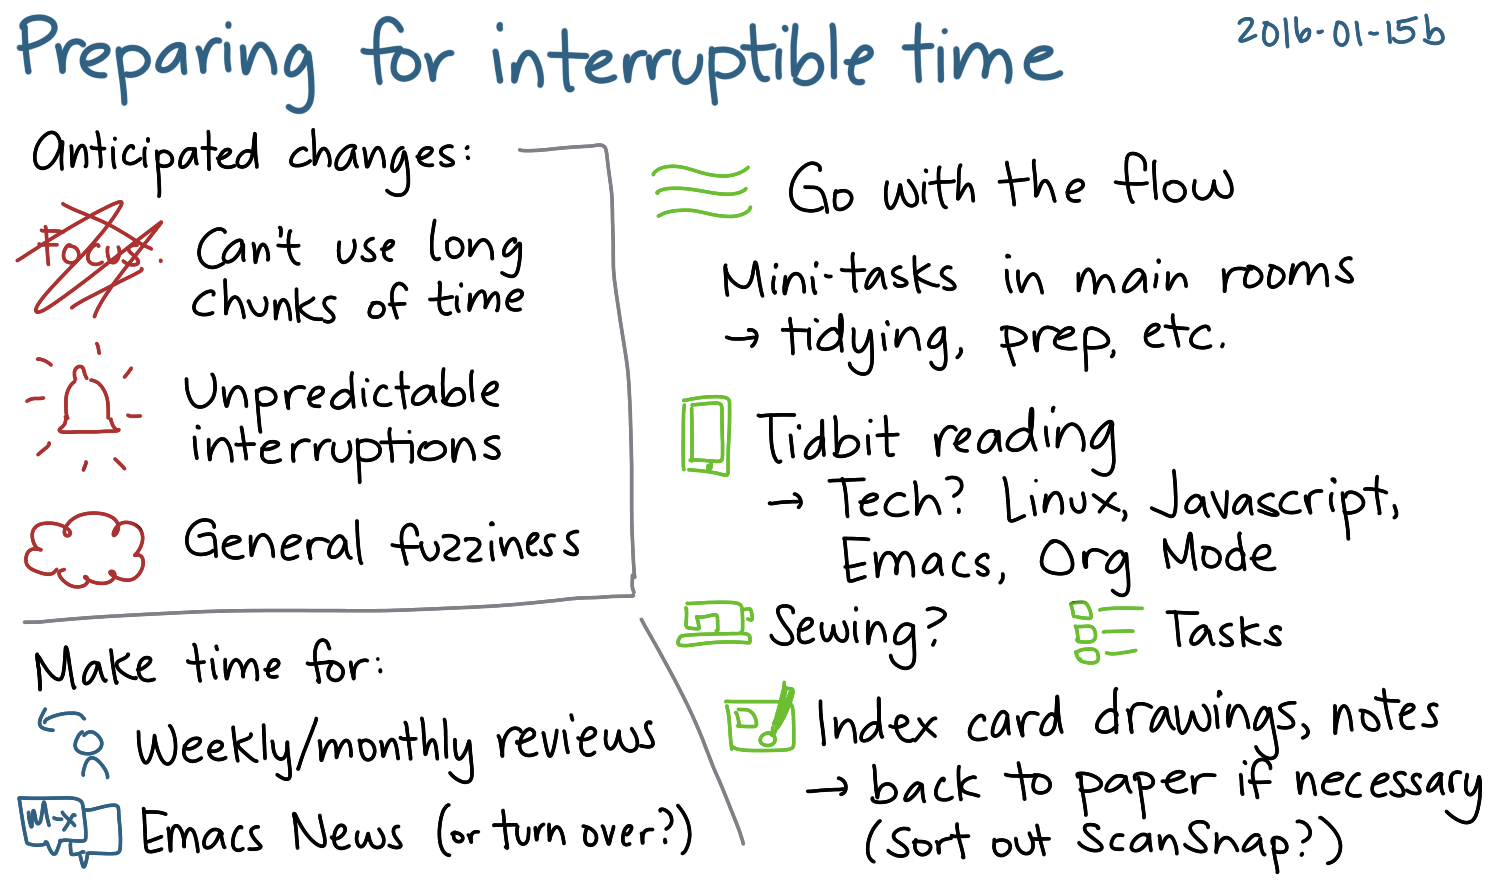 2016-01-15b Preparing for interruptible time -- index card #preparation #productivity #fuzziness.png